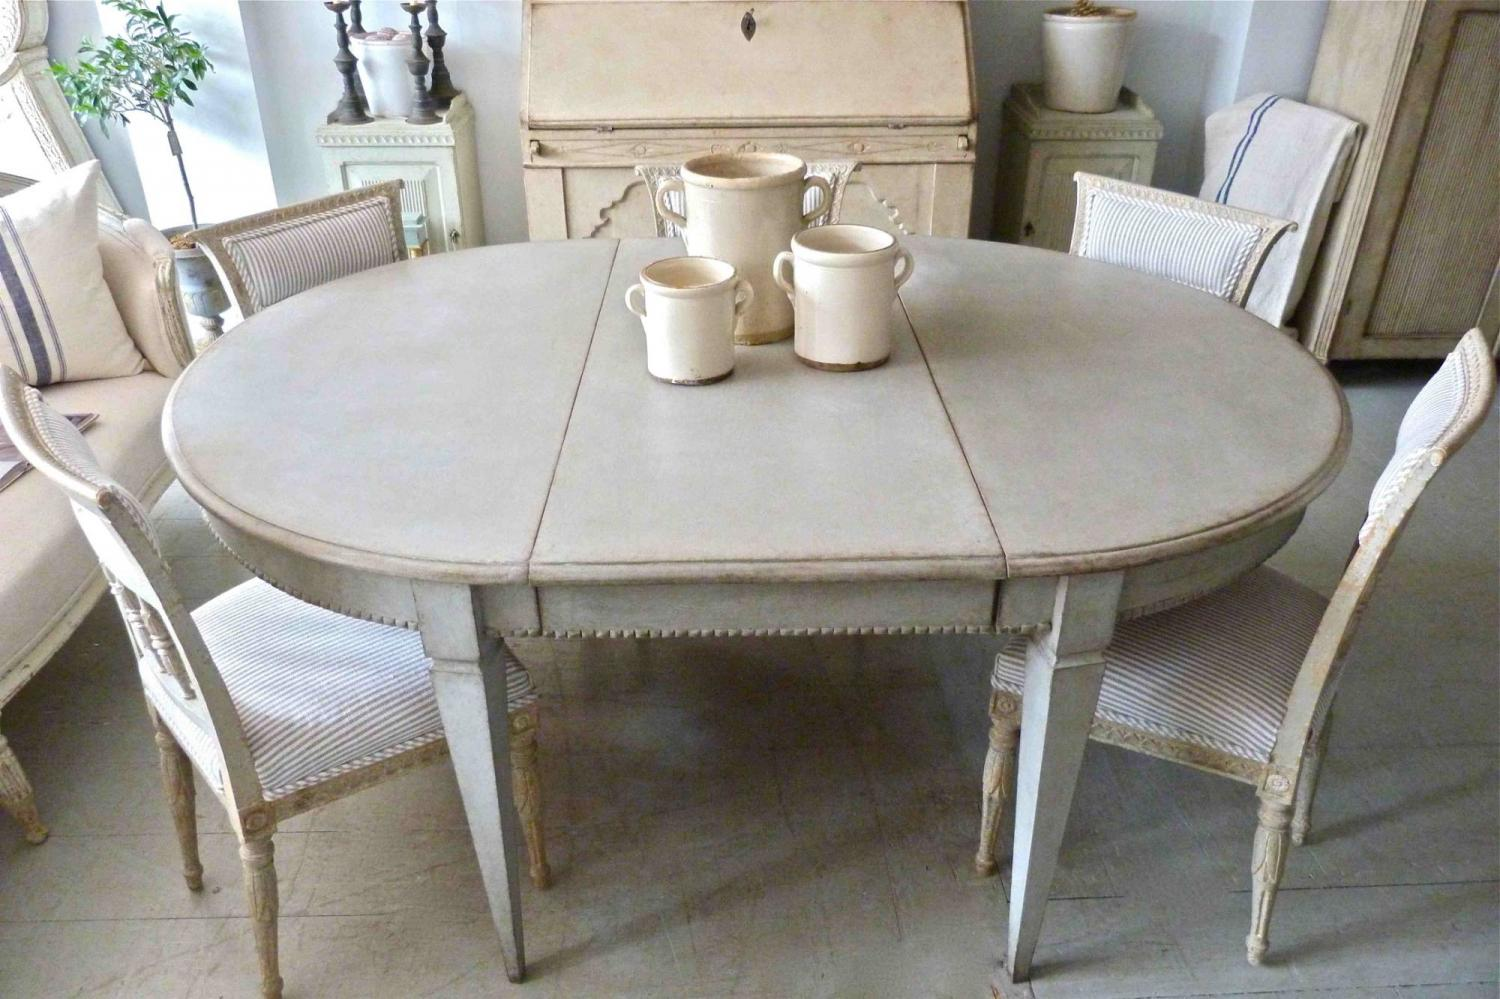 ANTIQUE SWEDISH GUSTAVIAN STYLE DINING TABLE In FURNITURE